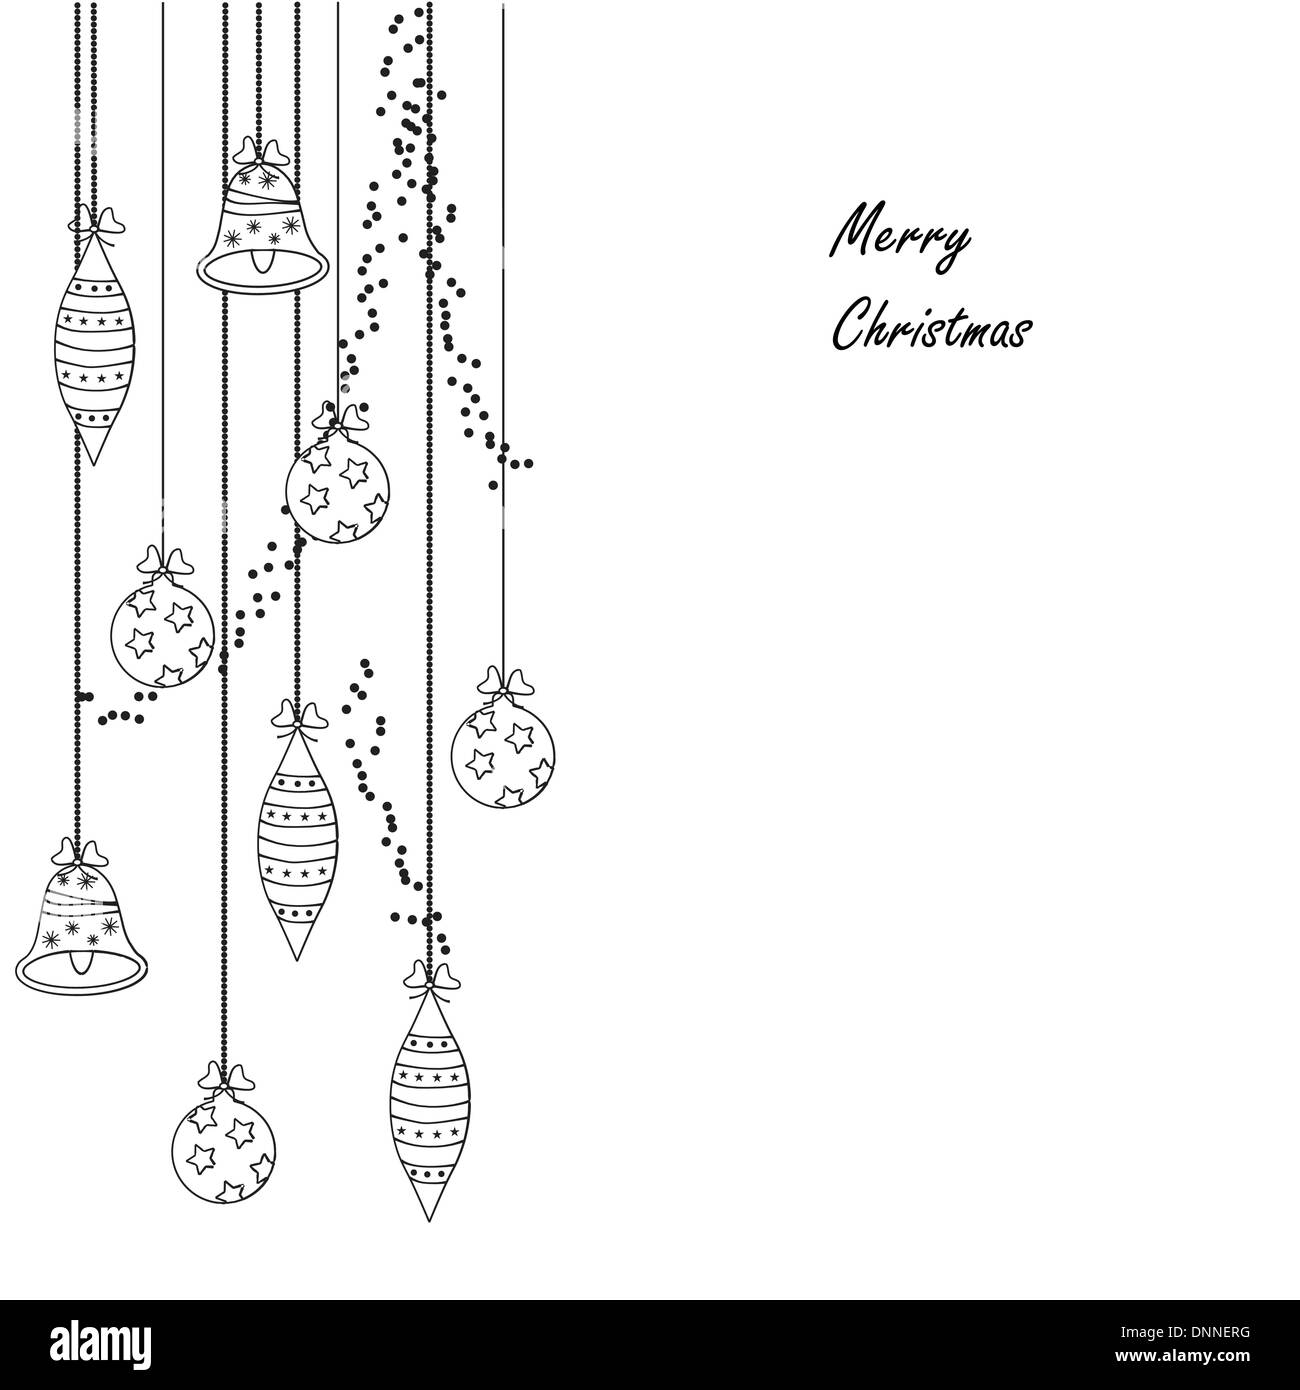 Christmas Border Black And White.Christmas Border Blue Black And White Stock Photos Images